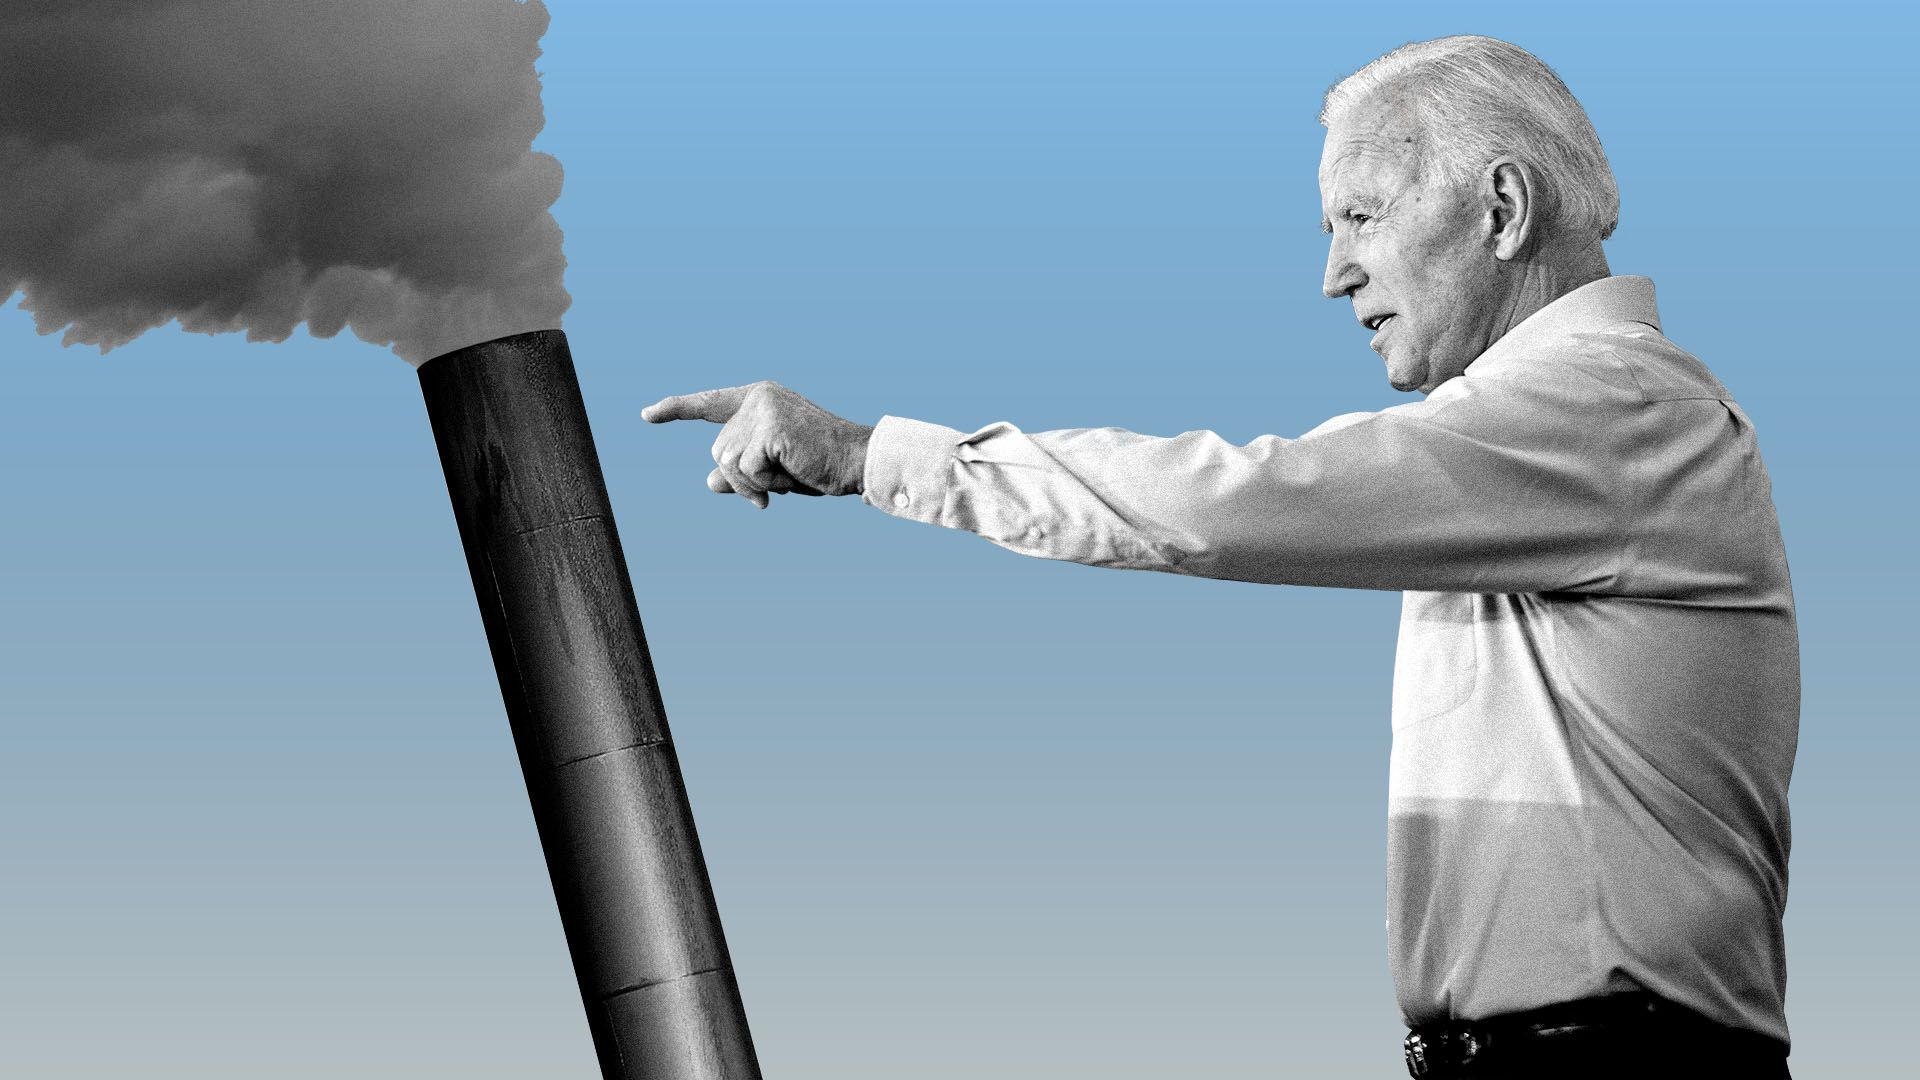 Illustration of Joe Biden pushing over a smokestack